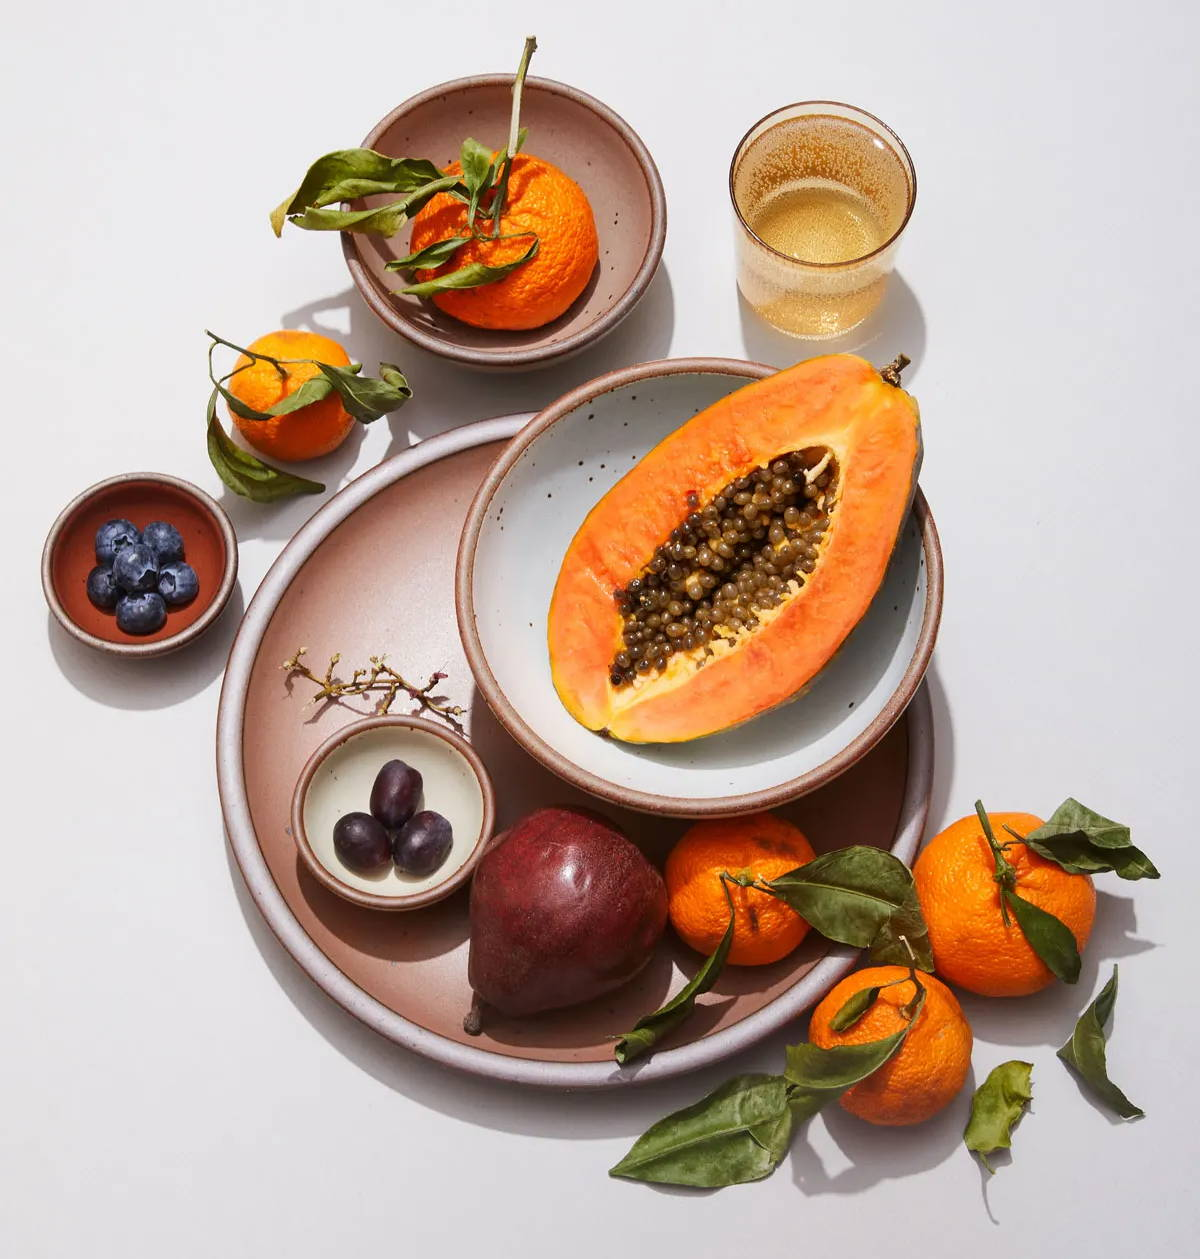 East Fork plates and bowls surrounded by ripened fruit